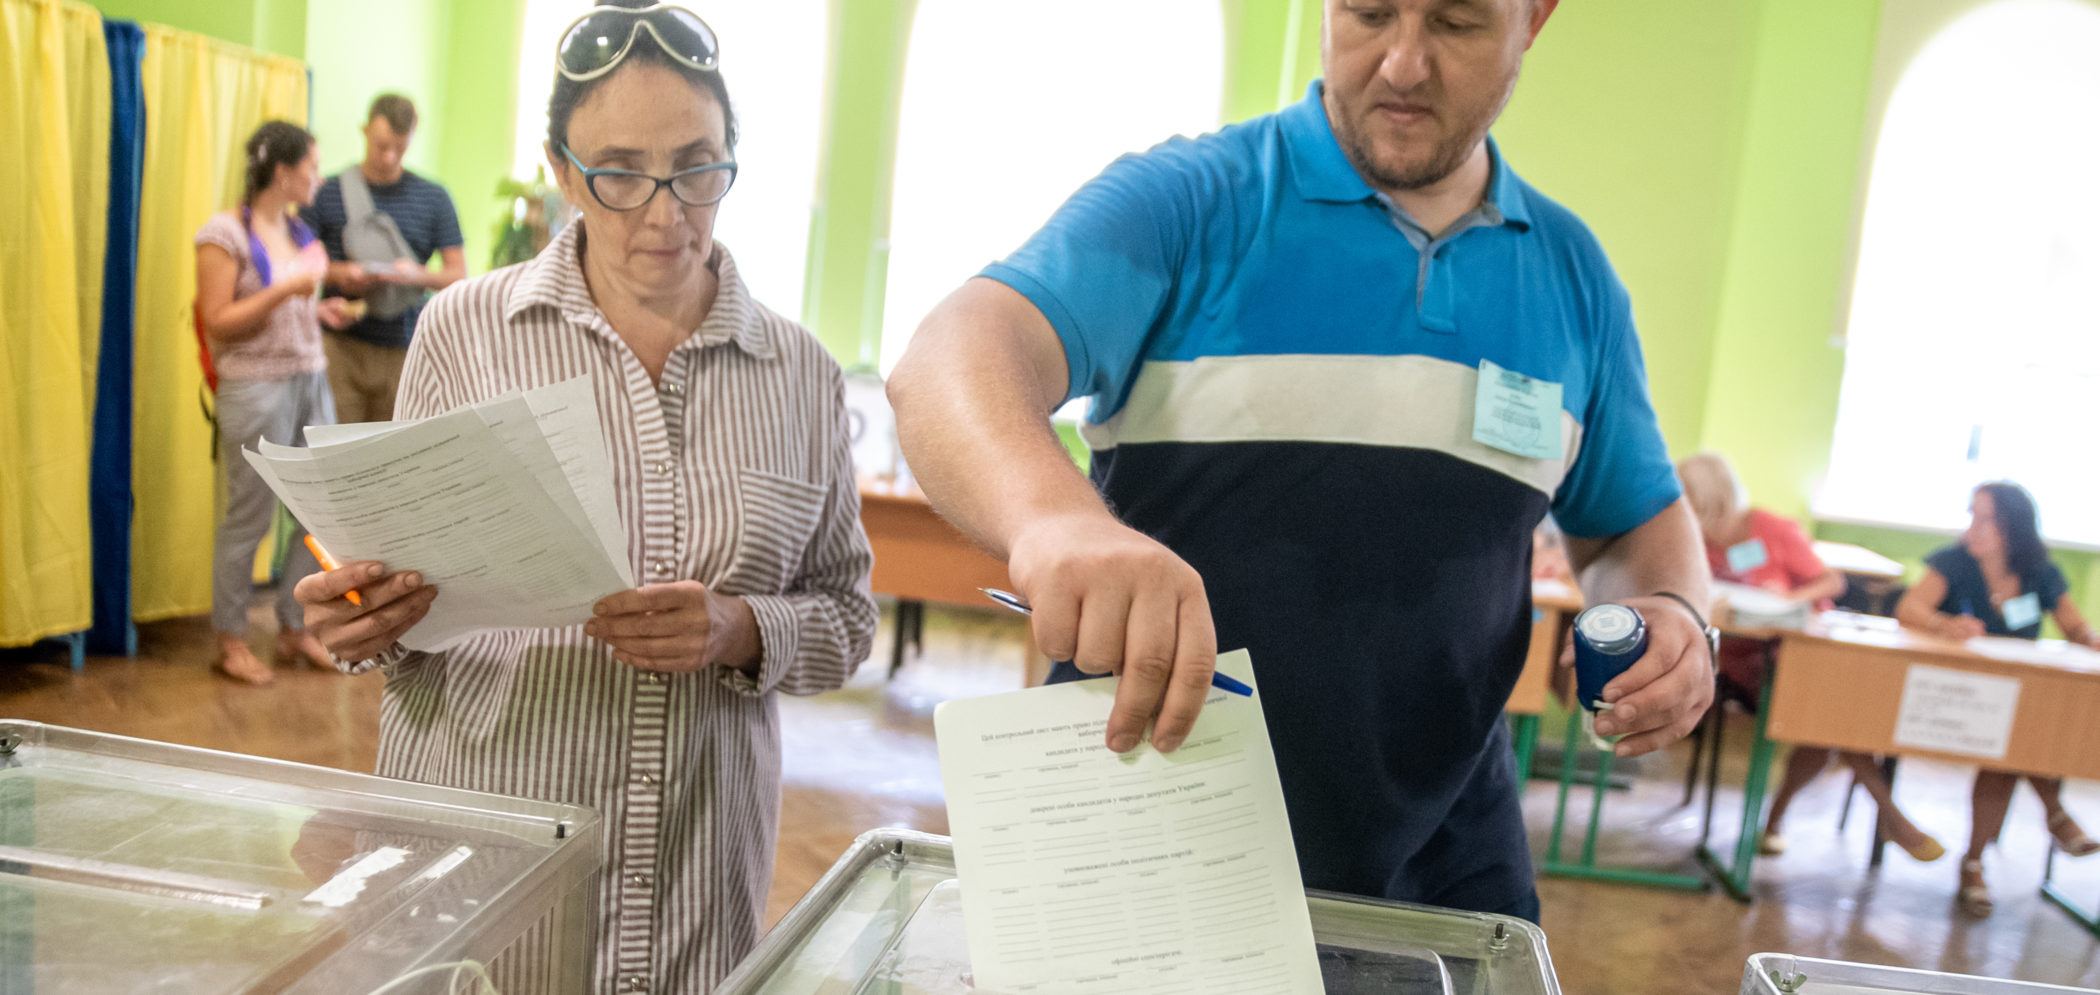 IFES Releases Global White Paper on Internet Voting